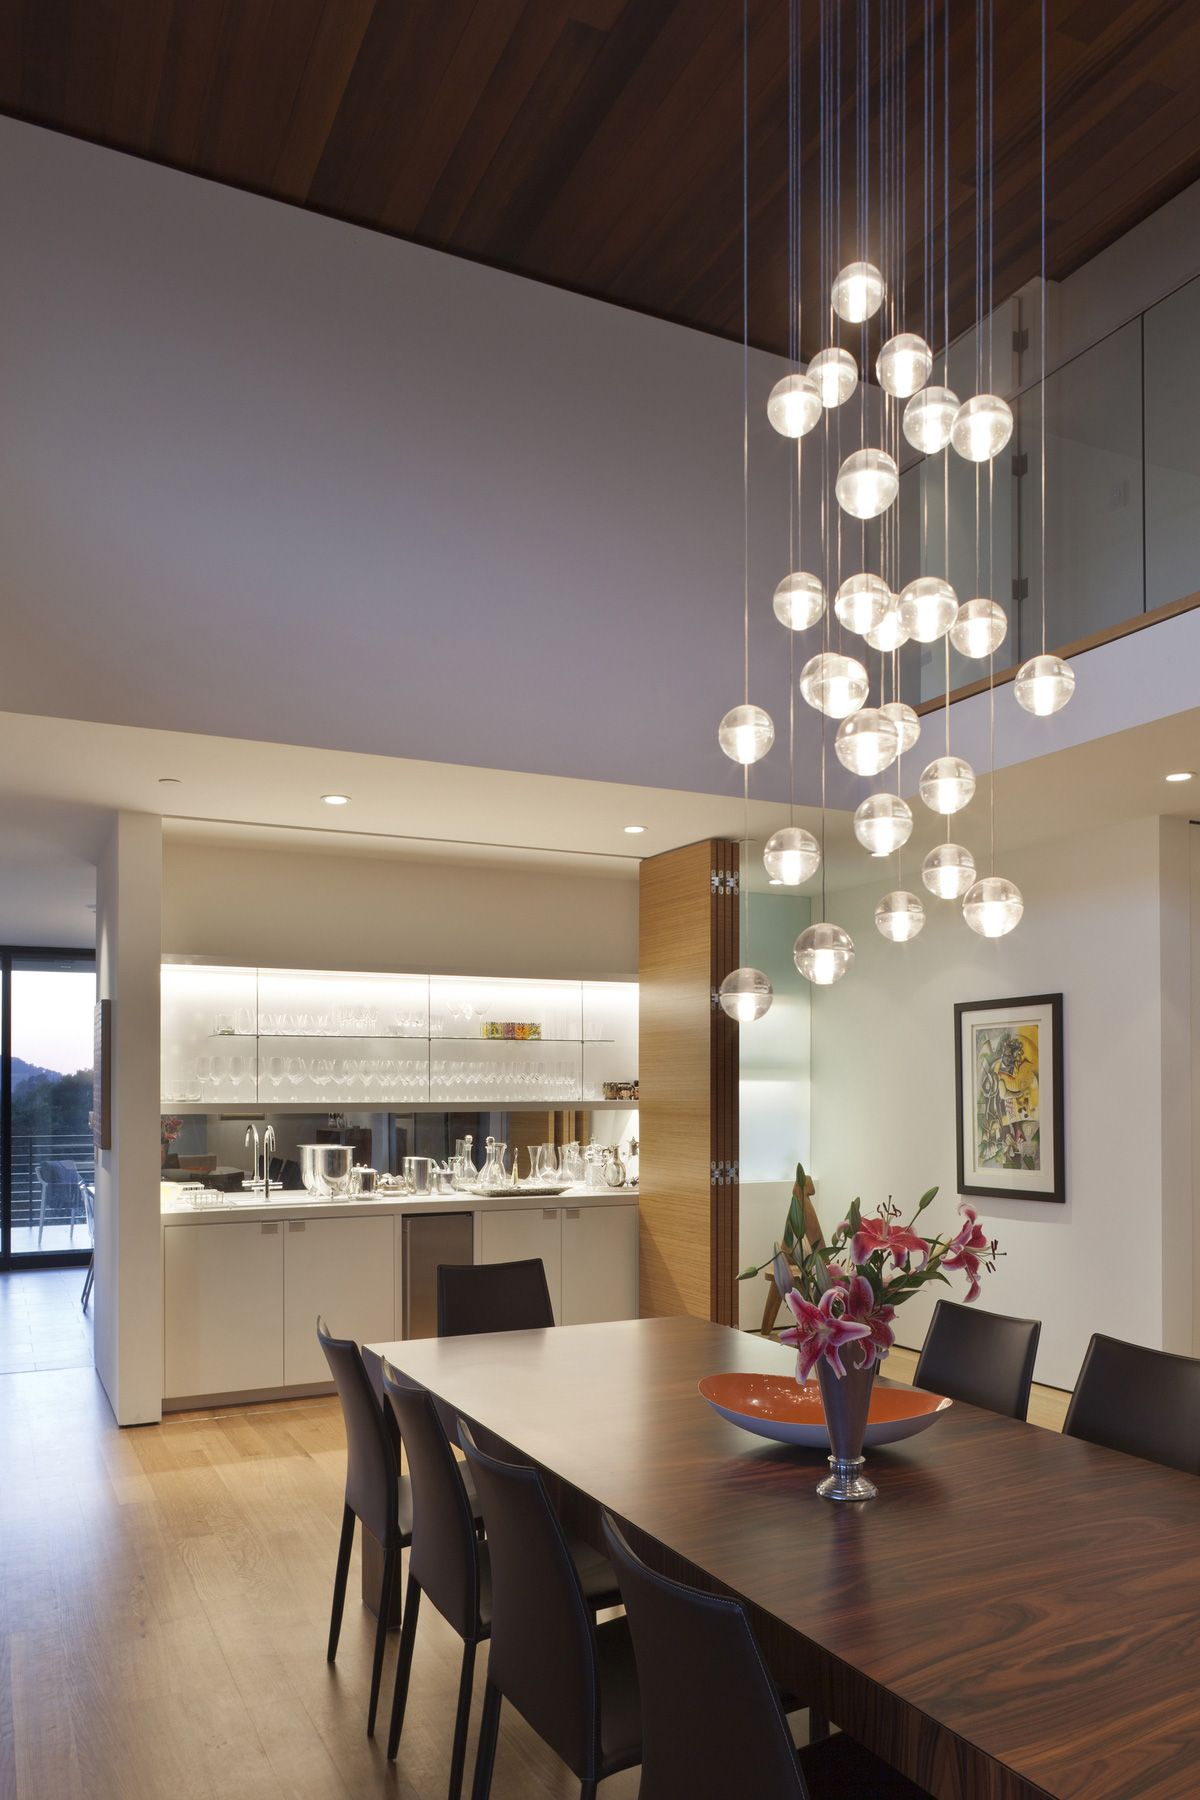 Contemporary Pendant Lighting For Dining Room Best Transforming One Storey Ranch Into Two Storey Open Floor Plan Inspiration